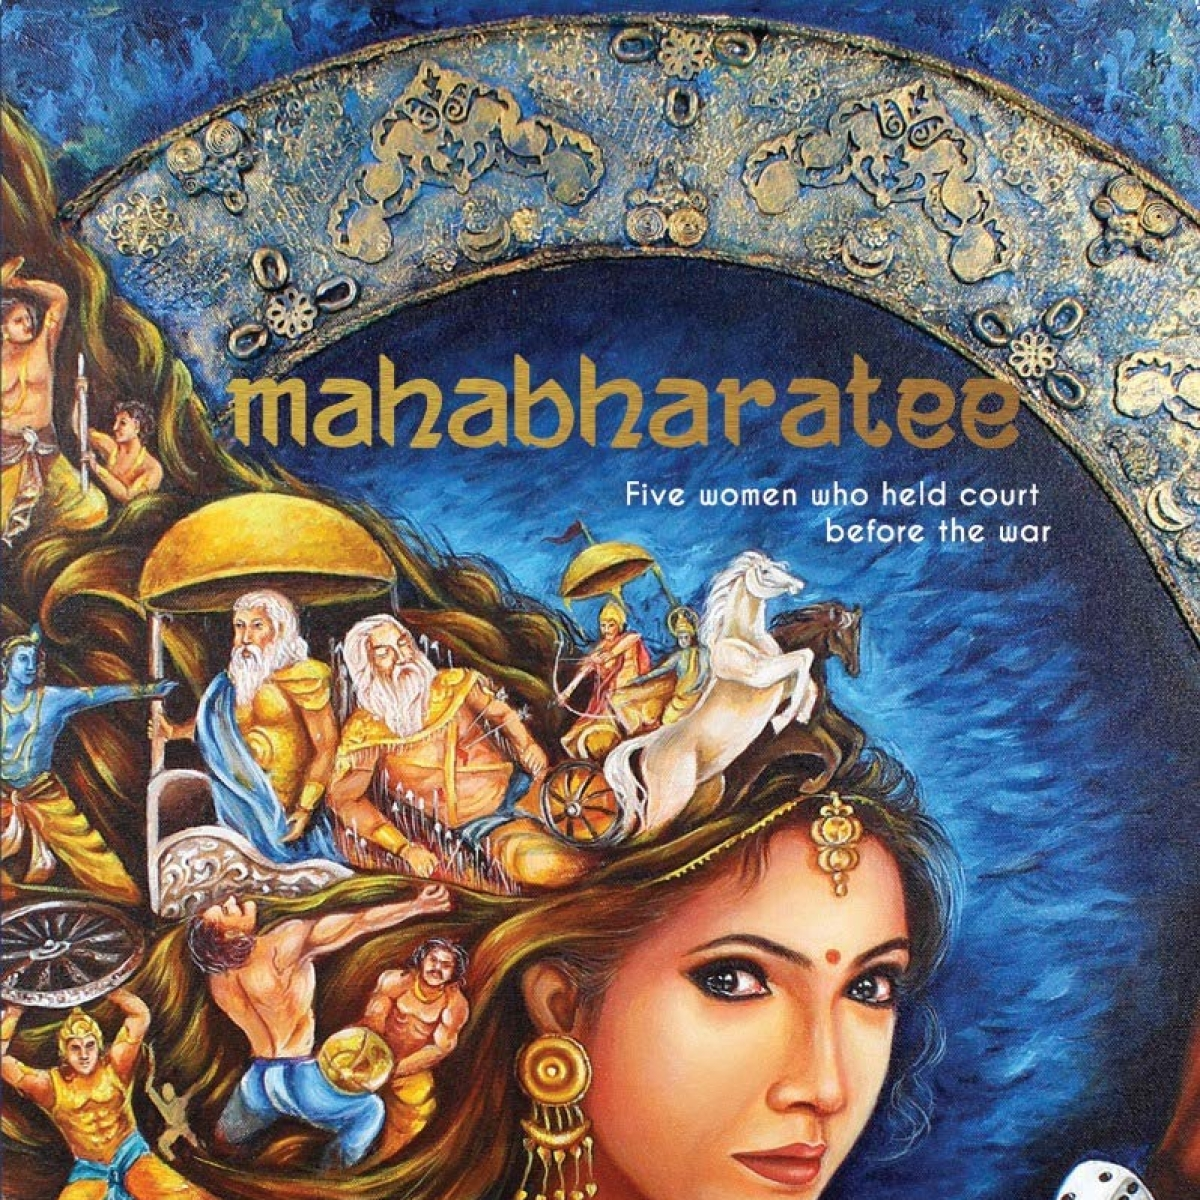 Book Review: Mahabharatee; Feministic take on the epic